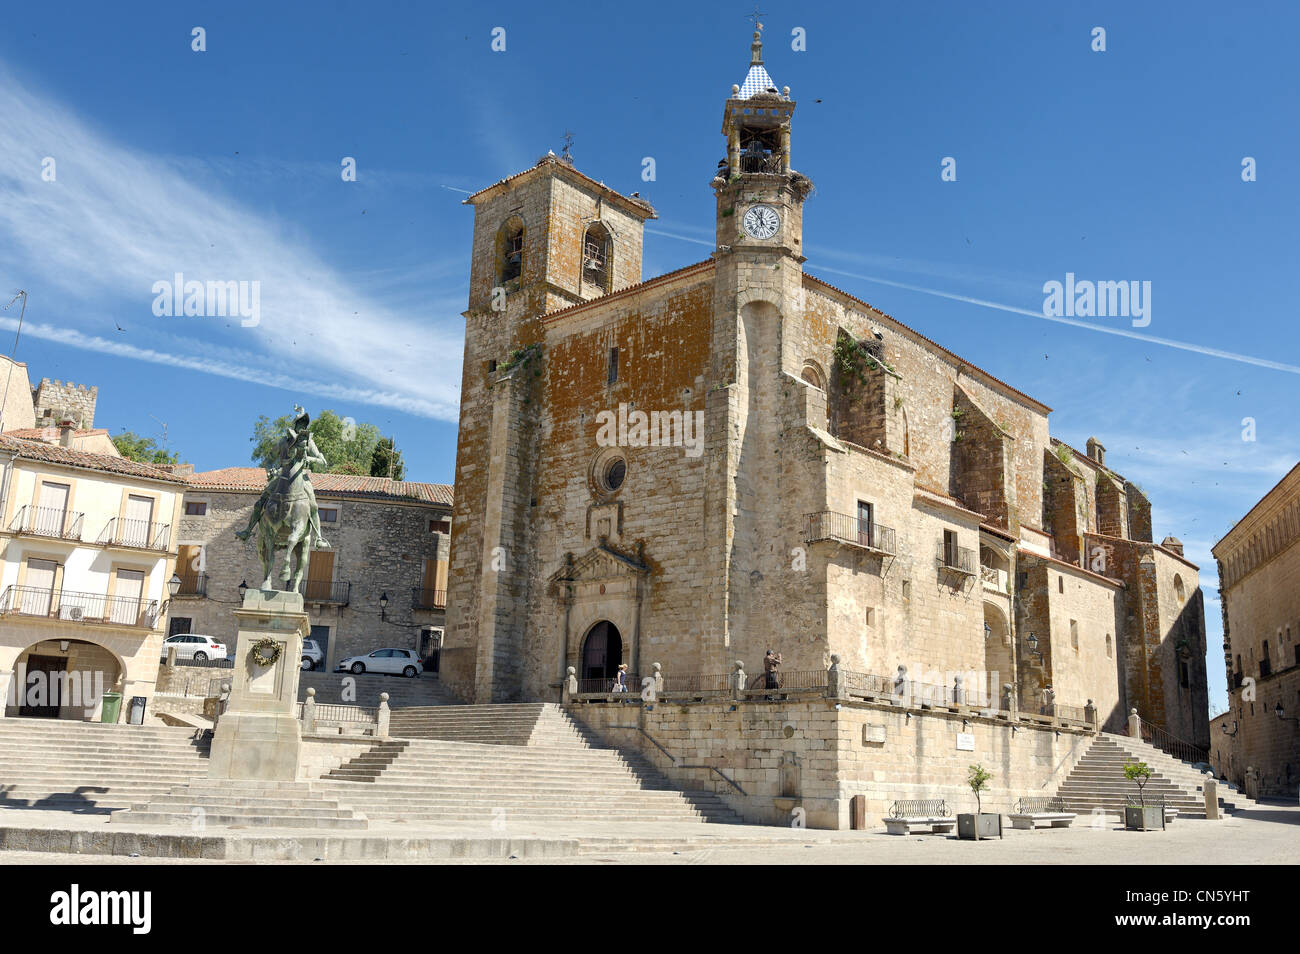 Spain, Extremadura, Trujillo, plaza Mayor, church of San Martin in front of the equestrian statue of Pizarro - Stock Image